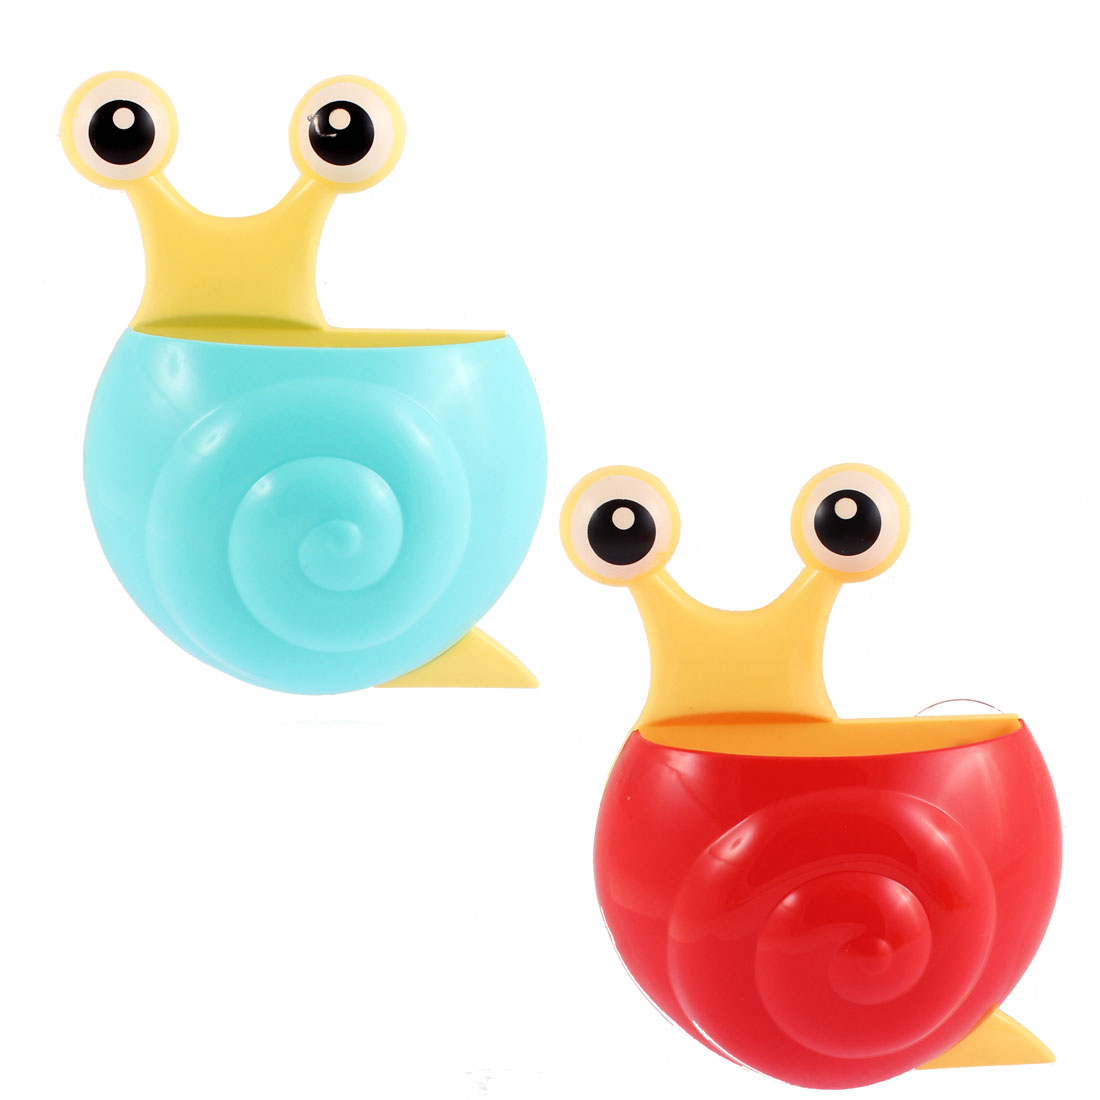 Uxcell Plastic Snail Design Suction Cup Toothbrush Holder Cyan Red 2pcs